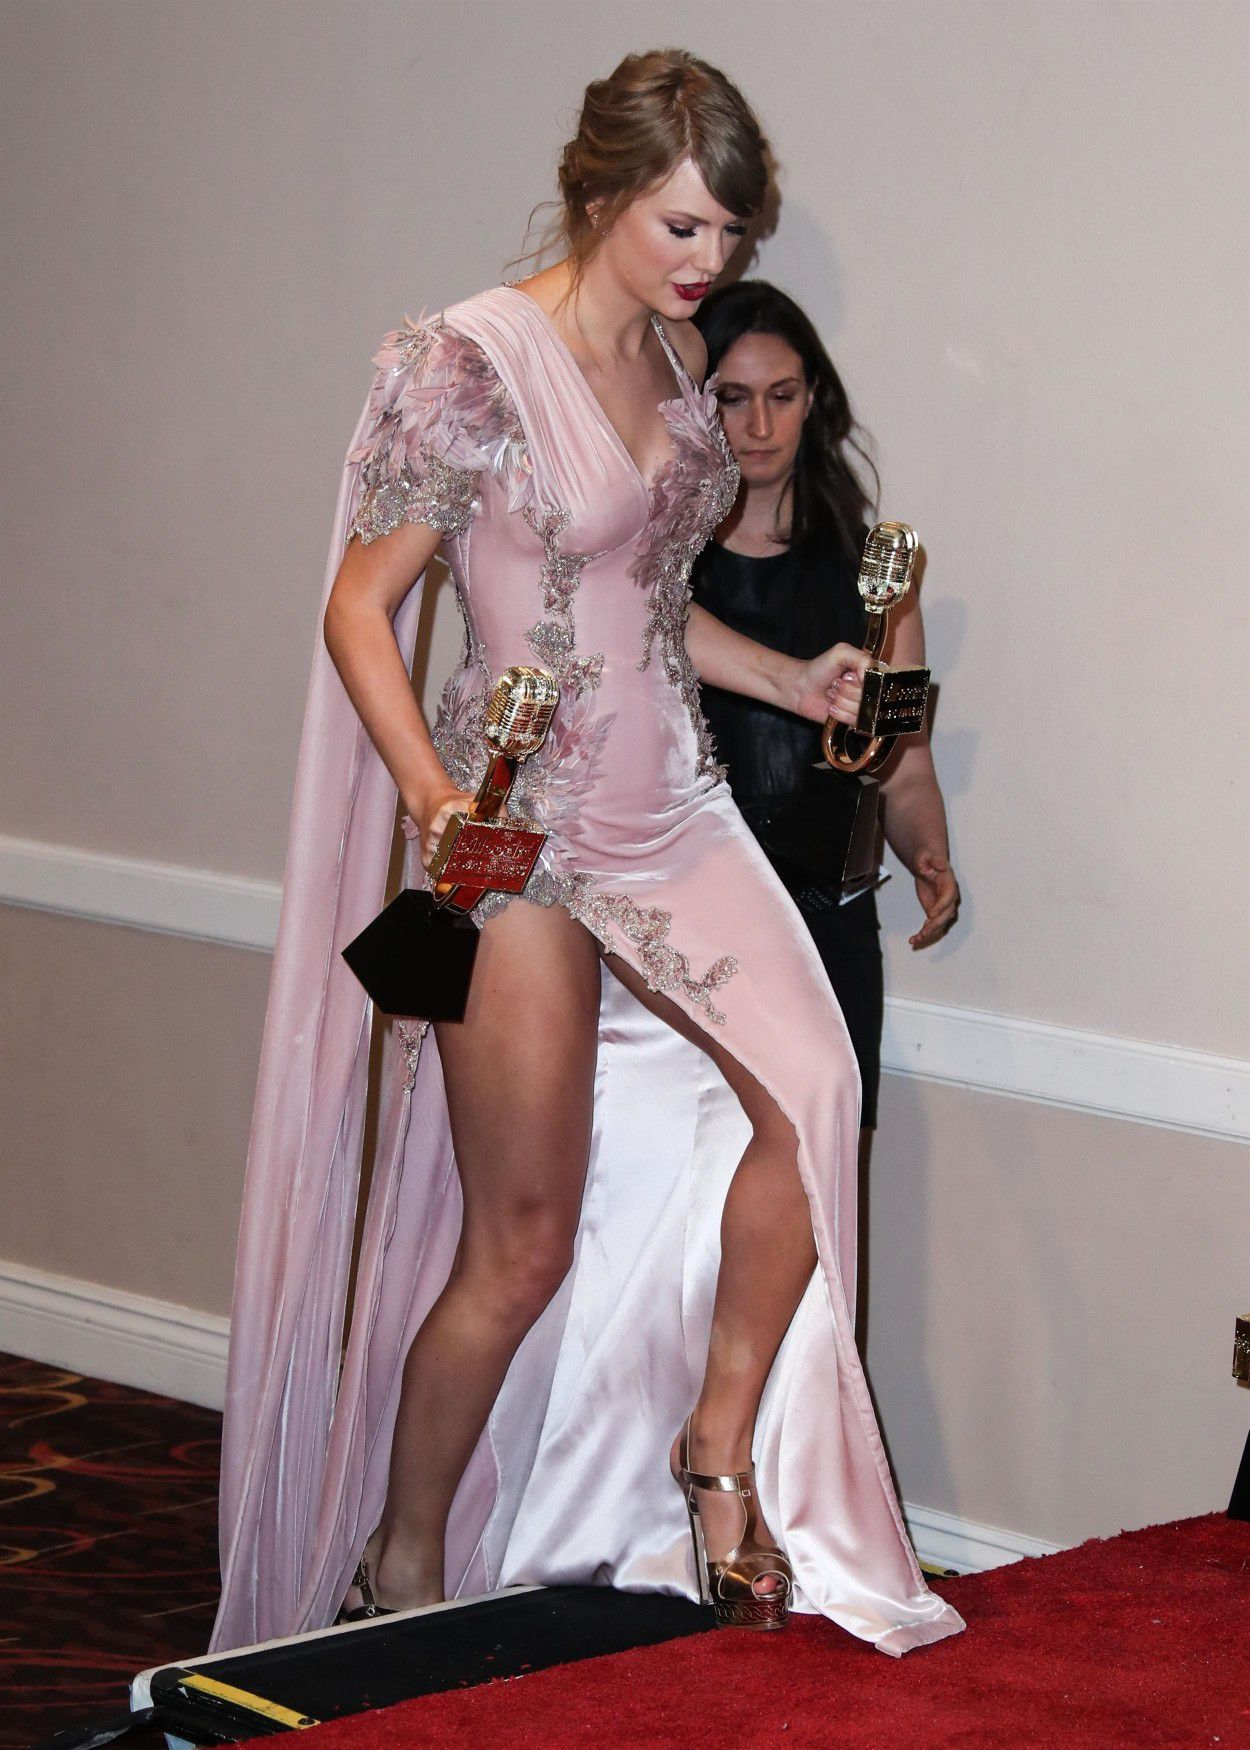 Taylor swift upskirt pic question congratulate